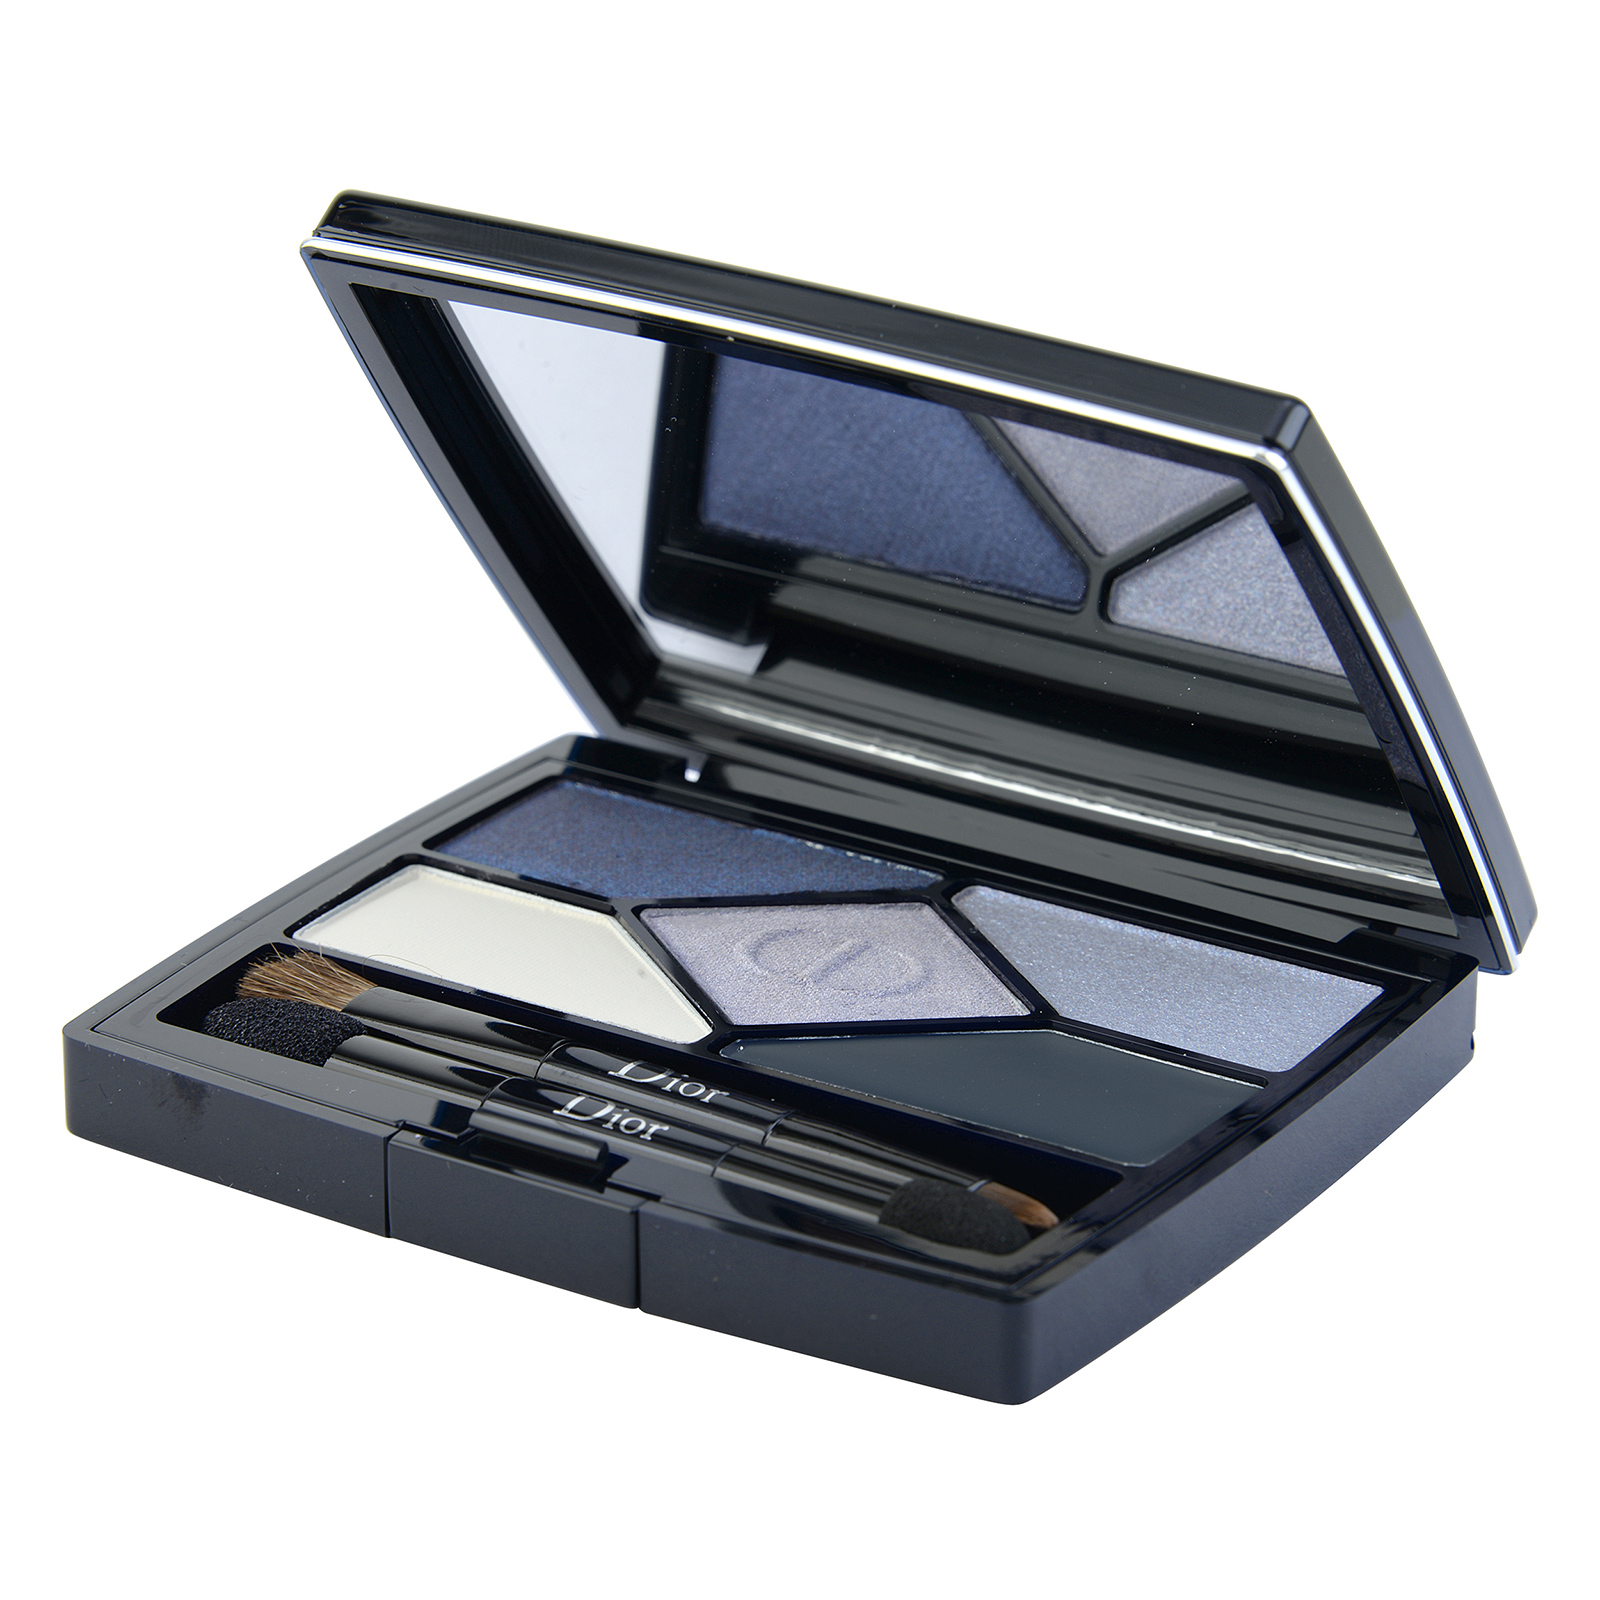 Christian Dior 5 Couleurs Designer  All-In-One Professional Eye Palette 208 Navy Design, 0.2oz, 5.7g